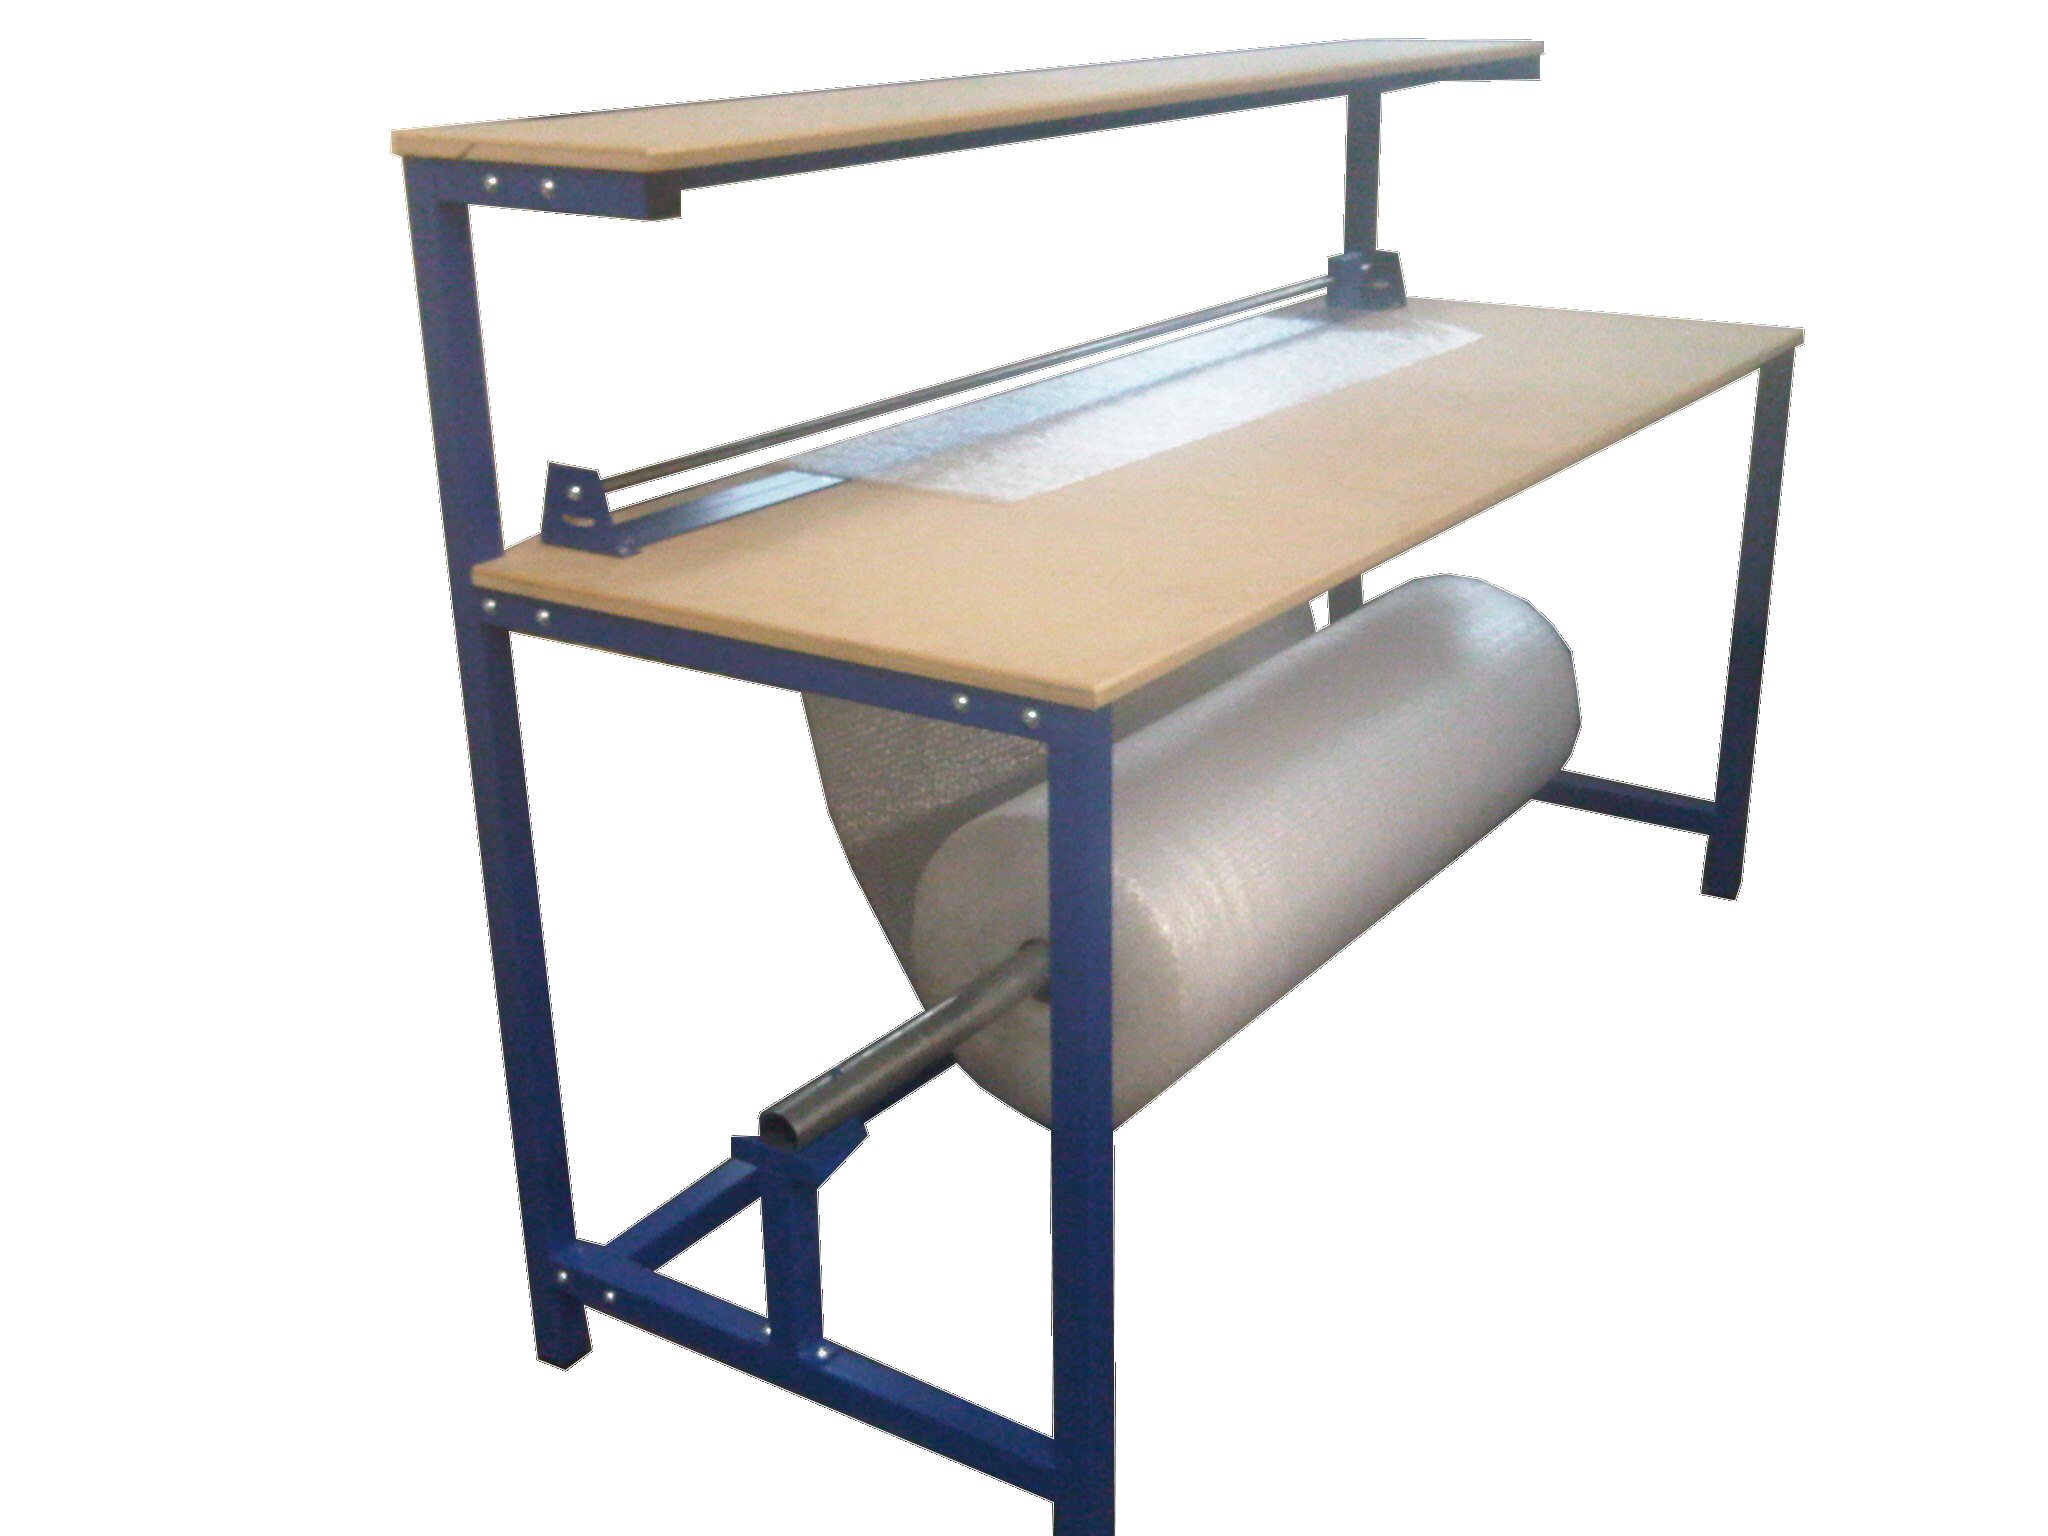 Standard packing benches